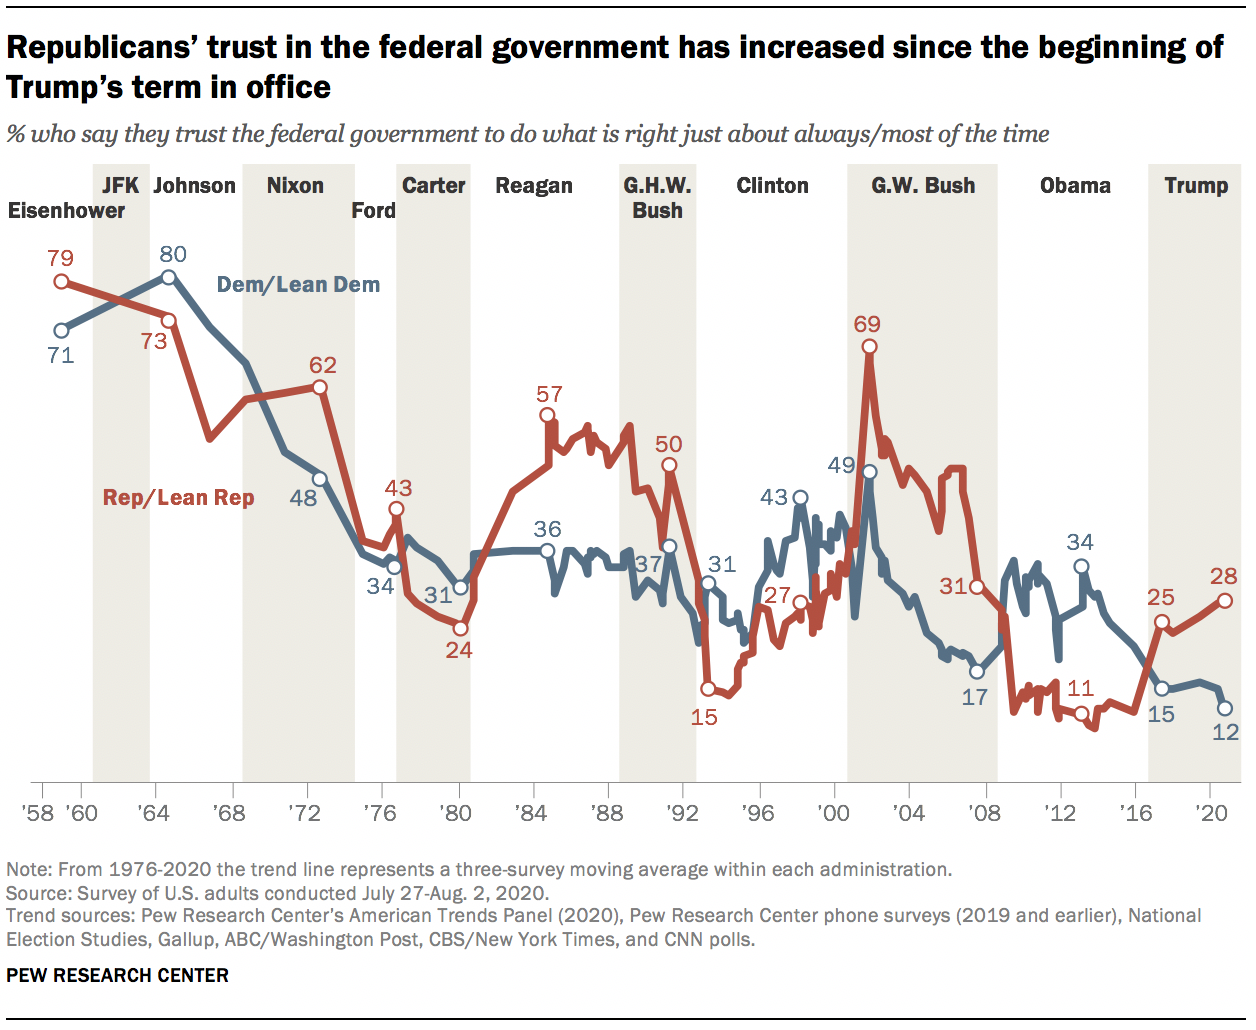 Republicans' trust in the federal government has increased since the beginning of Trump's term in office